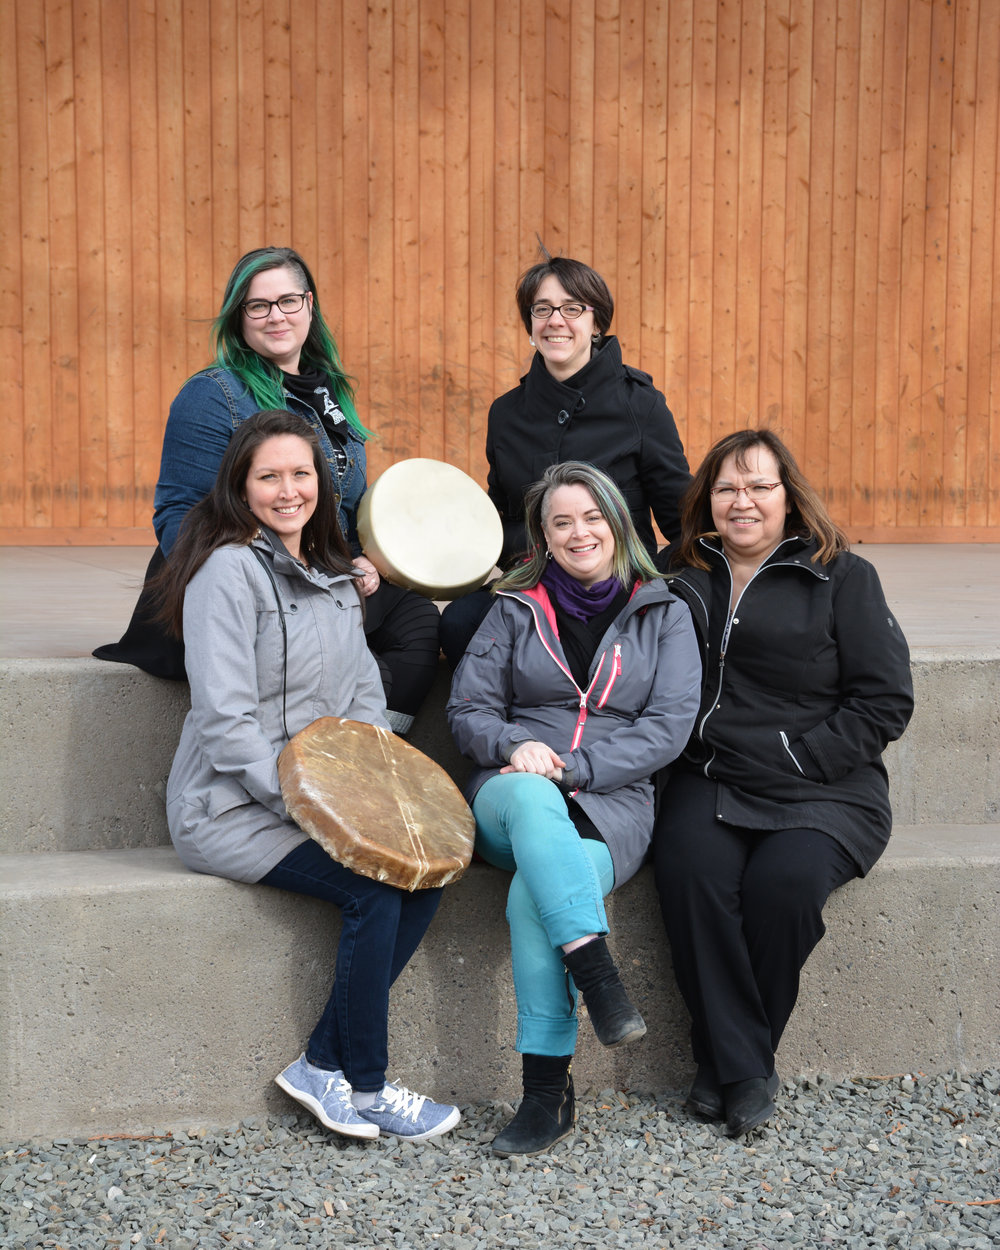 Meet the Team : (Top Left to Bottom Right) Meghan Brady, Lead Coordinator; Miriam Colvin, Artistic Director - Walking Together; Molly Wickham, Community Engagement Facilitator; River Wilde, Lead Coordinator,  Birdy Markert, Co-Chair Bridging Committee.    Image by Shannon Finnegan